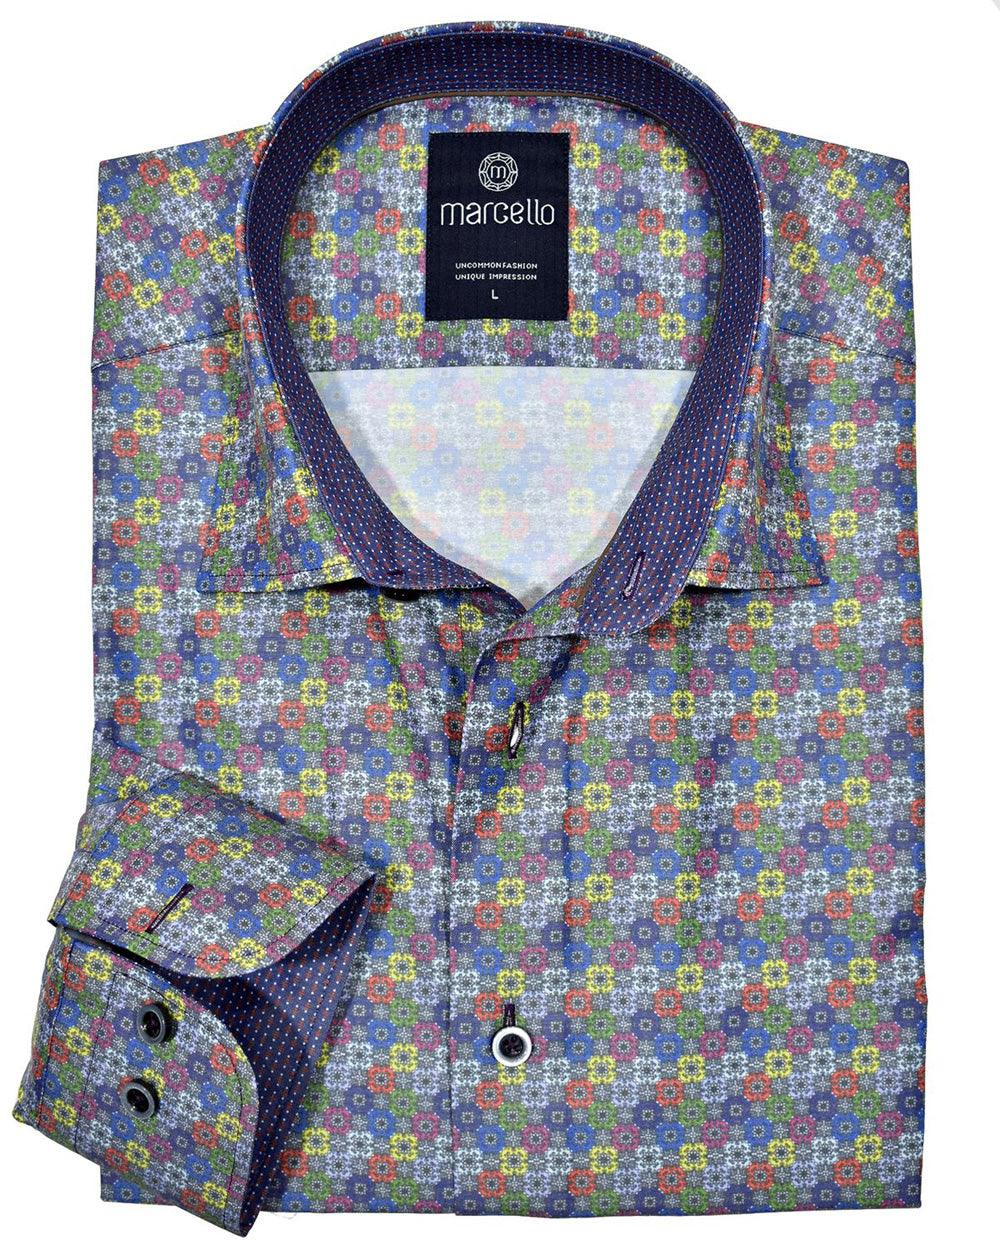 W356 Multi Medallion Print Shirt